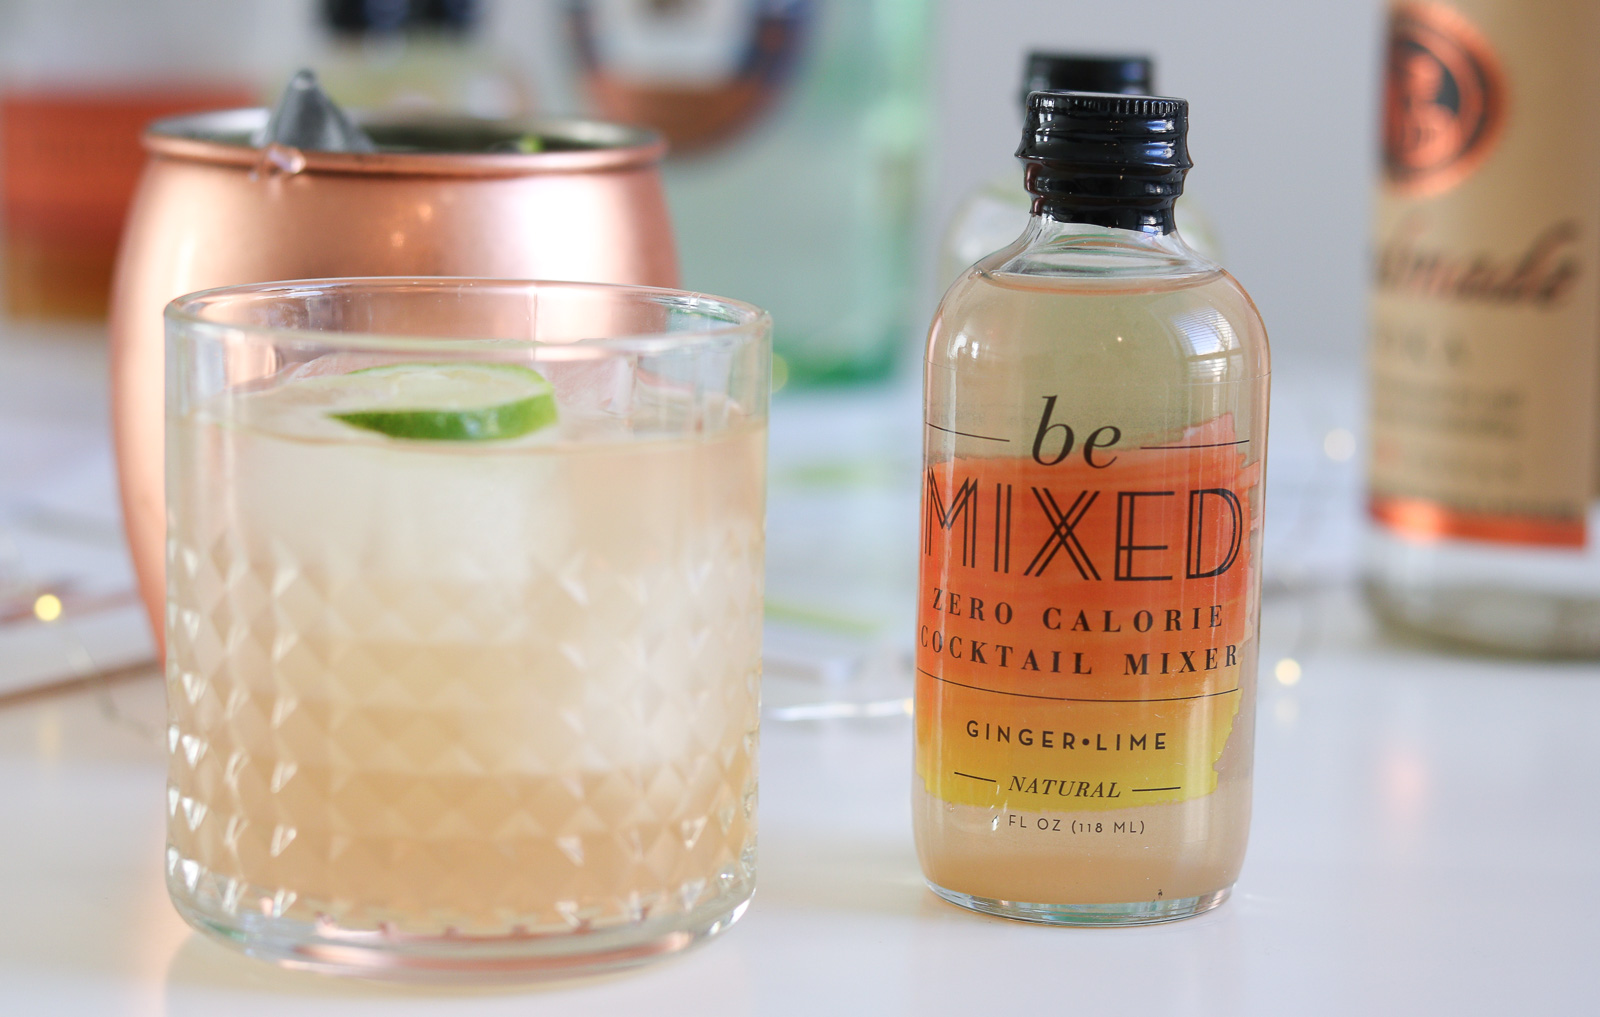 An Easy Cocktail Recipe with Be Mixed   Cobalt Chronicles   Washington, DC   Style Blogger